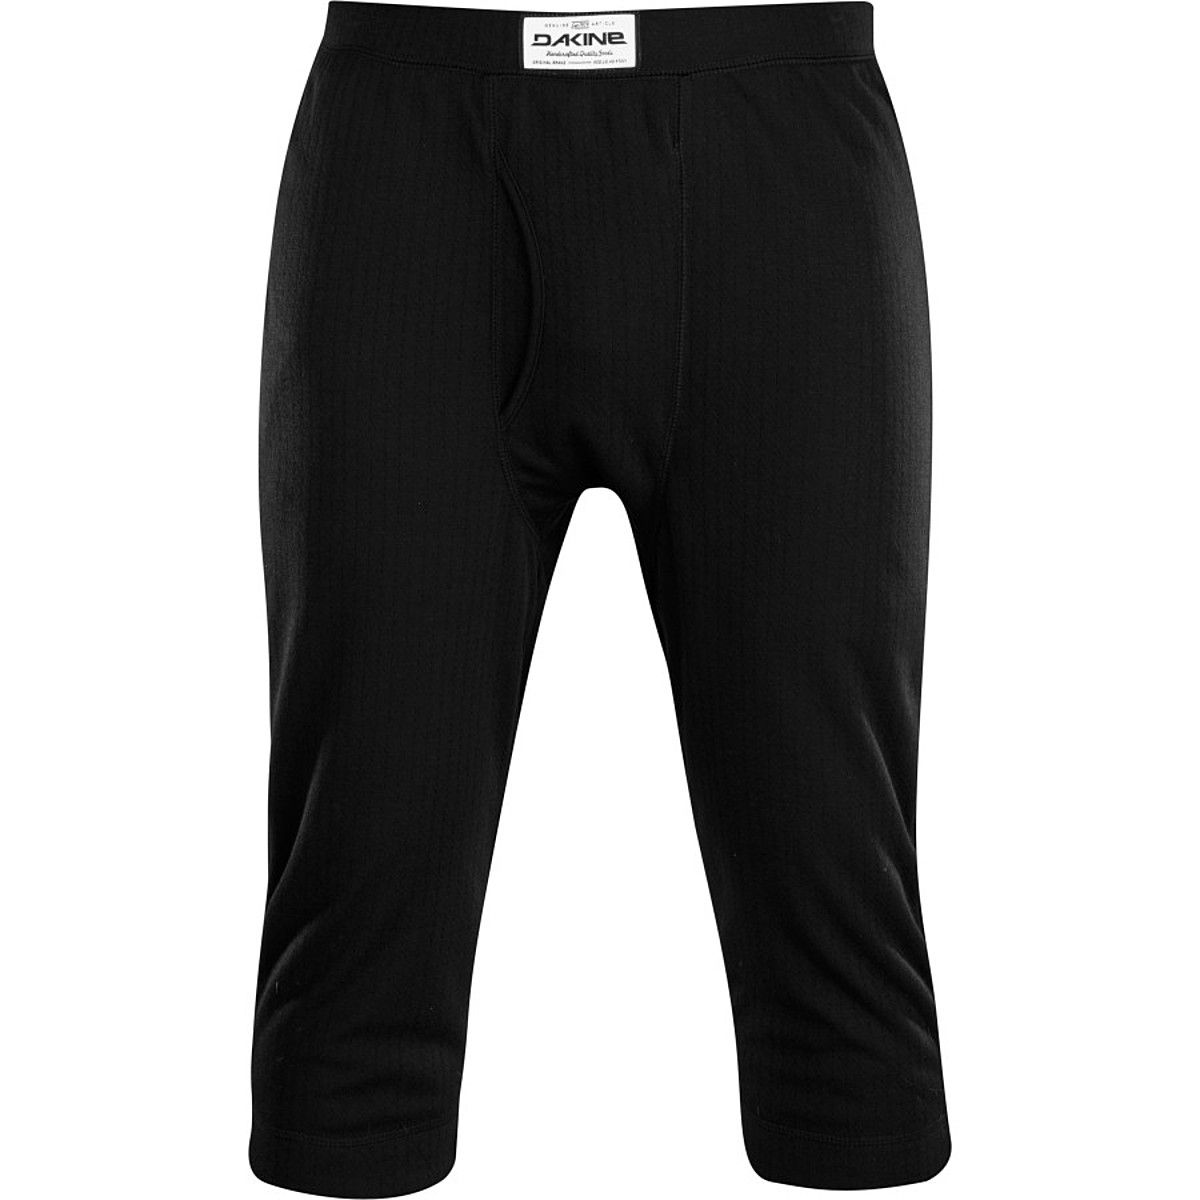 photo: DaKine Talon 3/4 Bottom base layer bottom